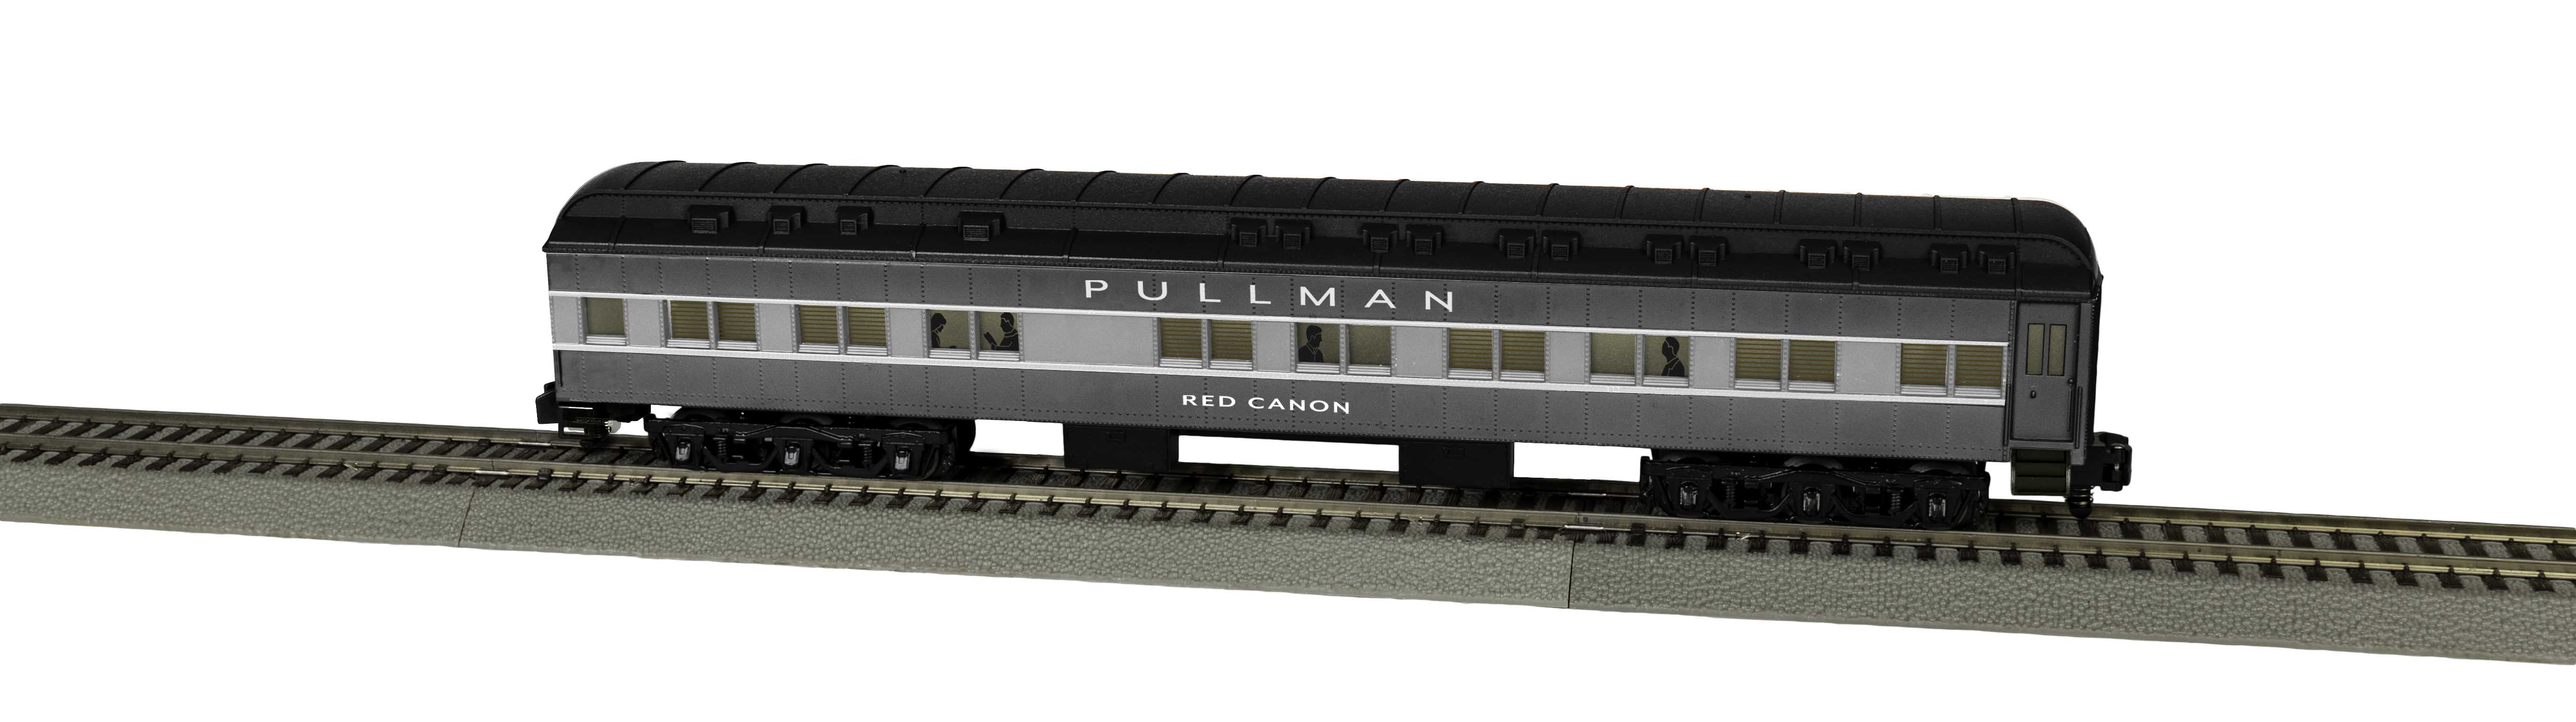 Lionel 2019421 S Pullman Heavyweight Sleeper Red Canon